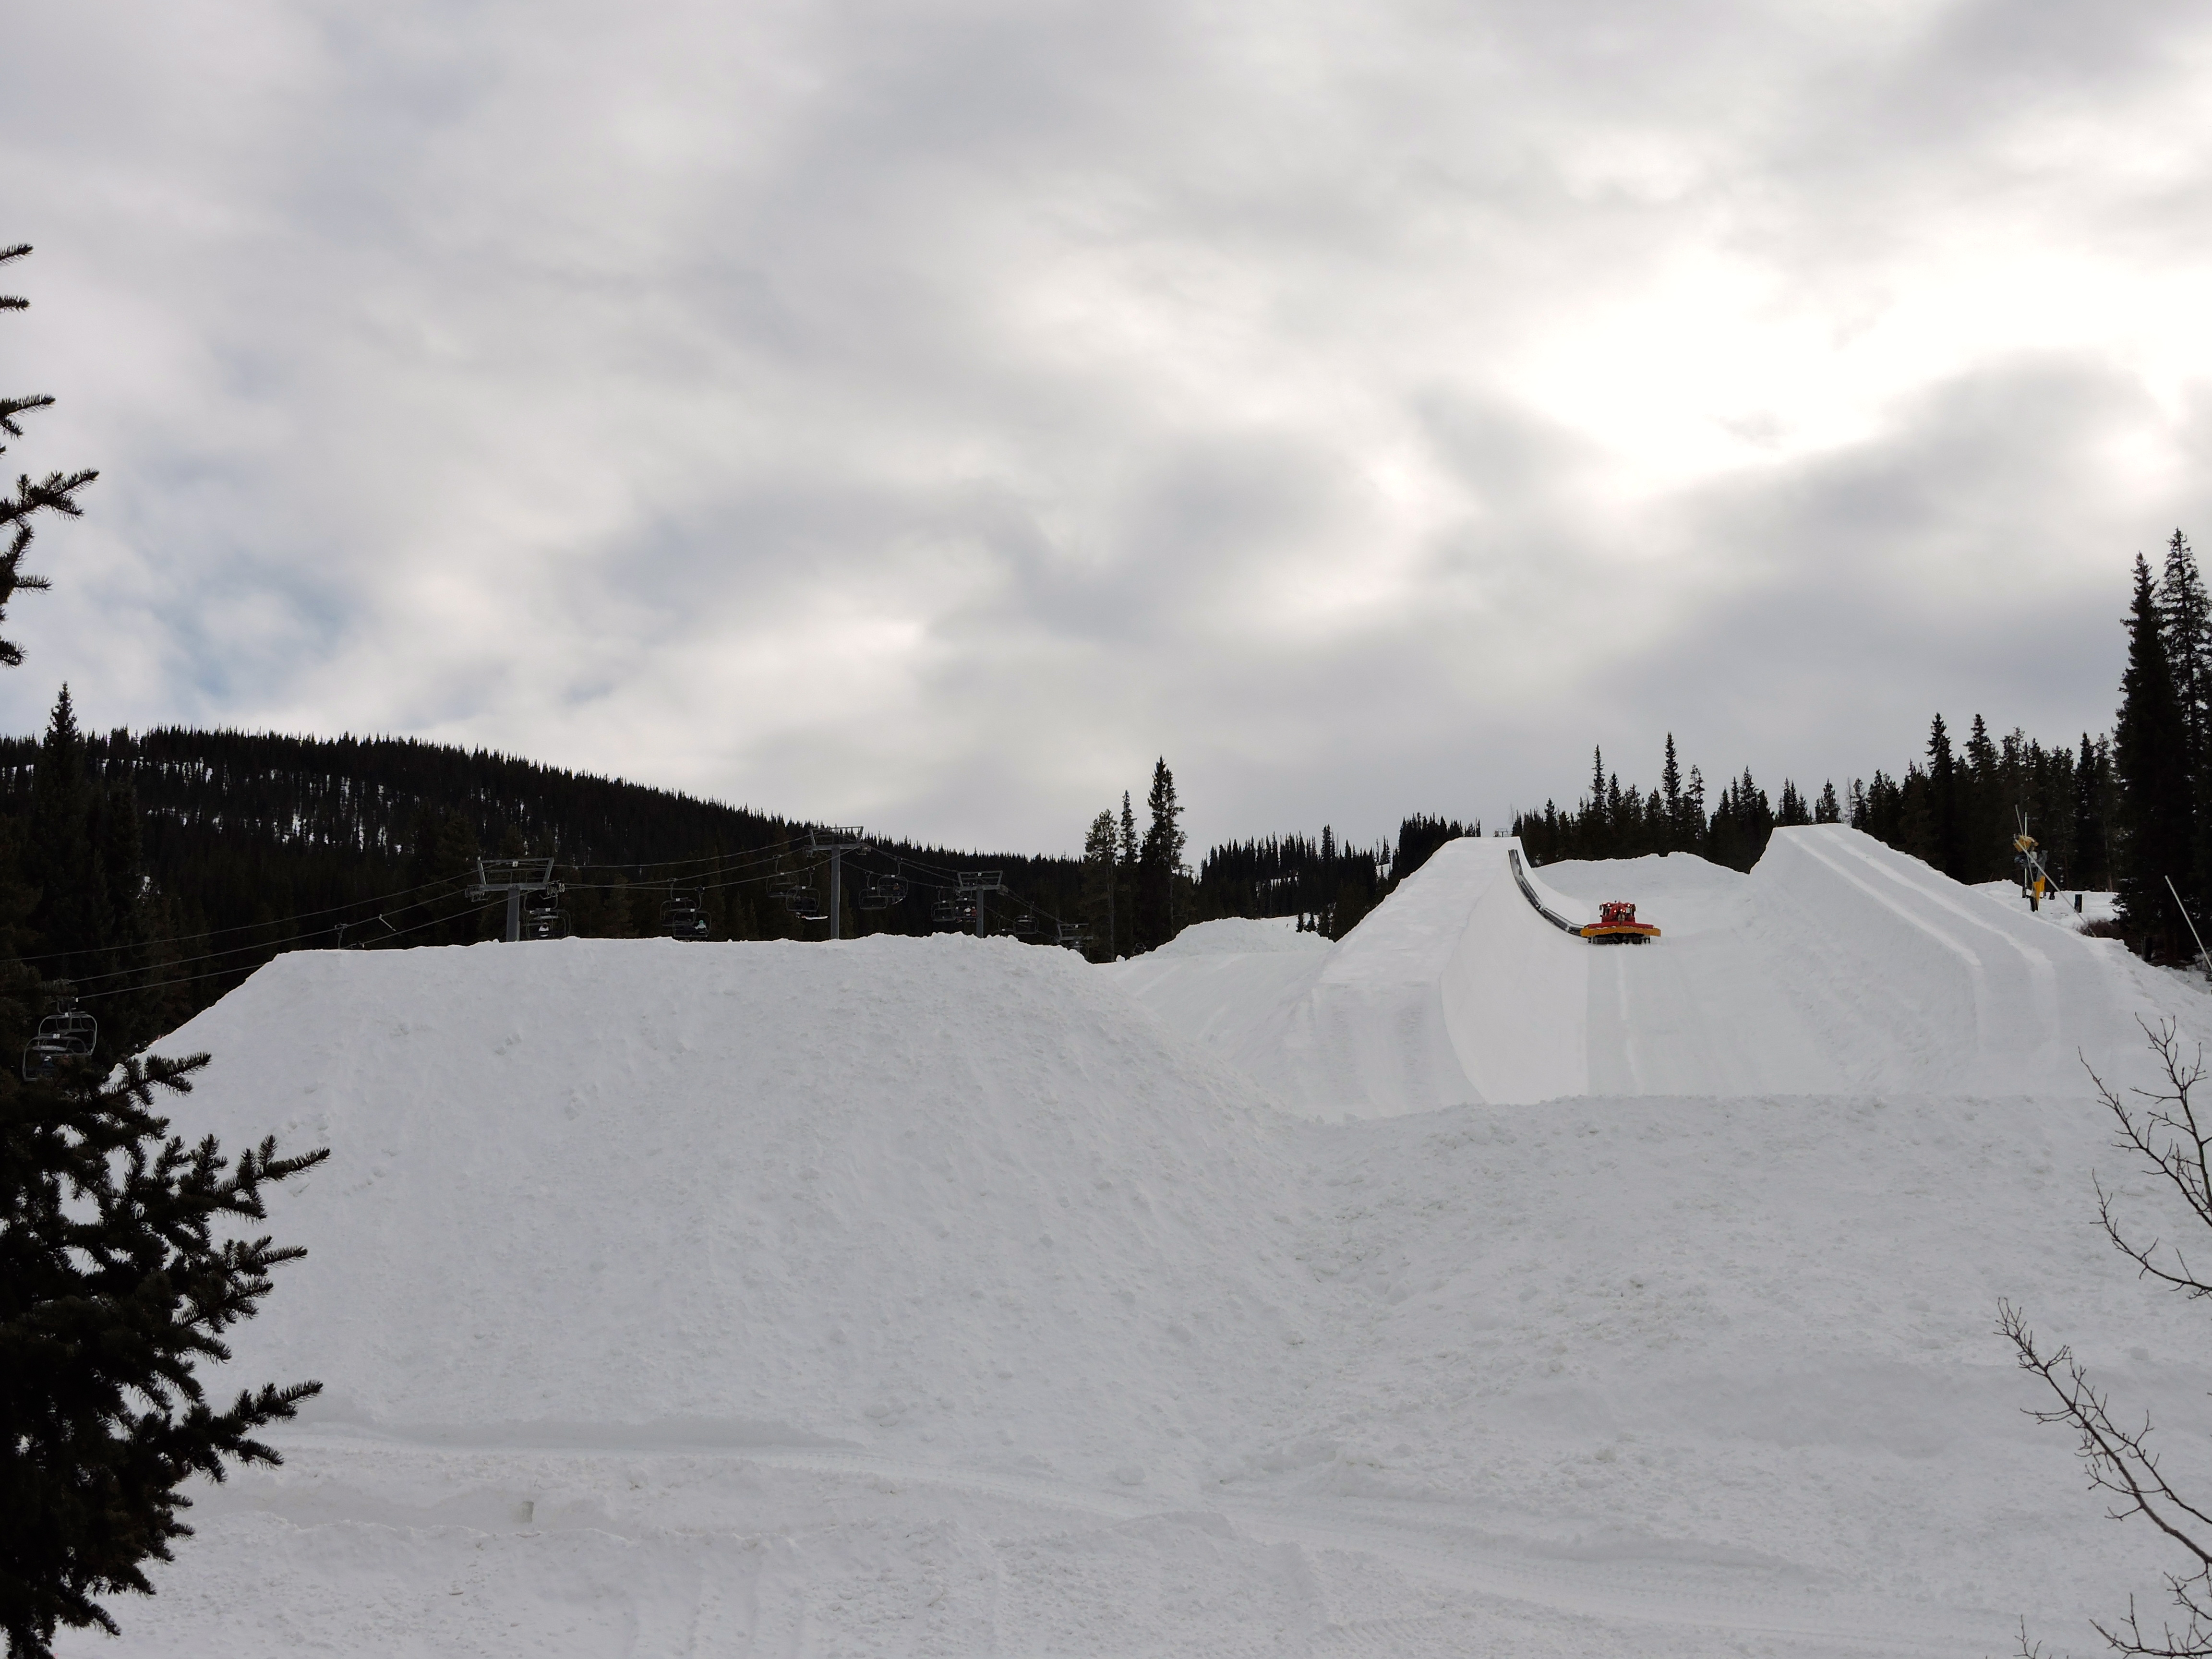 The halfpipe at Copper Mountain Colorado